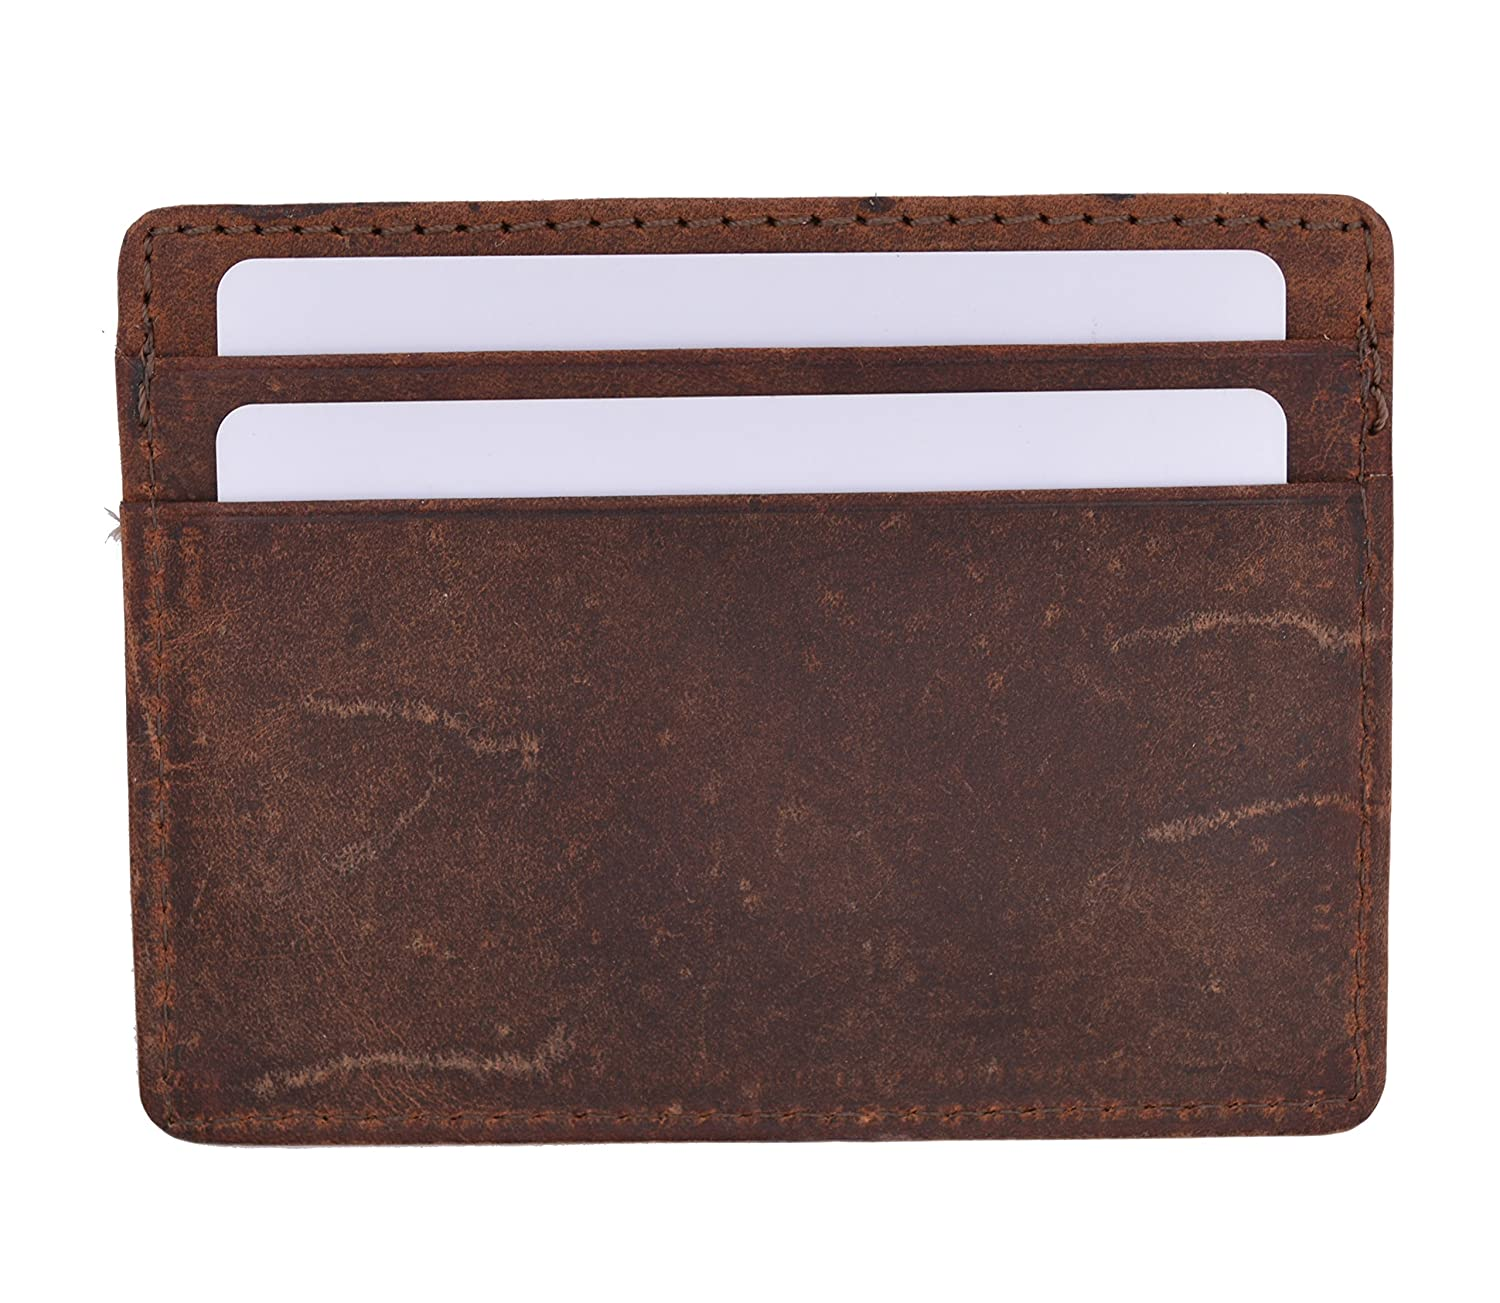 RFID Blocking Slim Vintage Look Leather Wallet Credit Card Case Sleeve Card Holder Thin Wallet